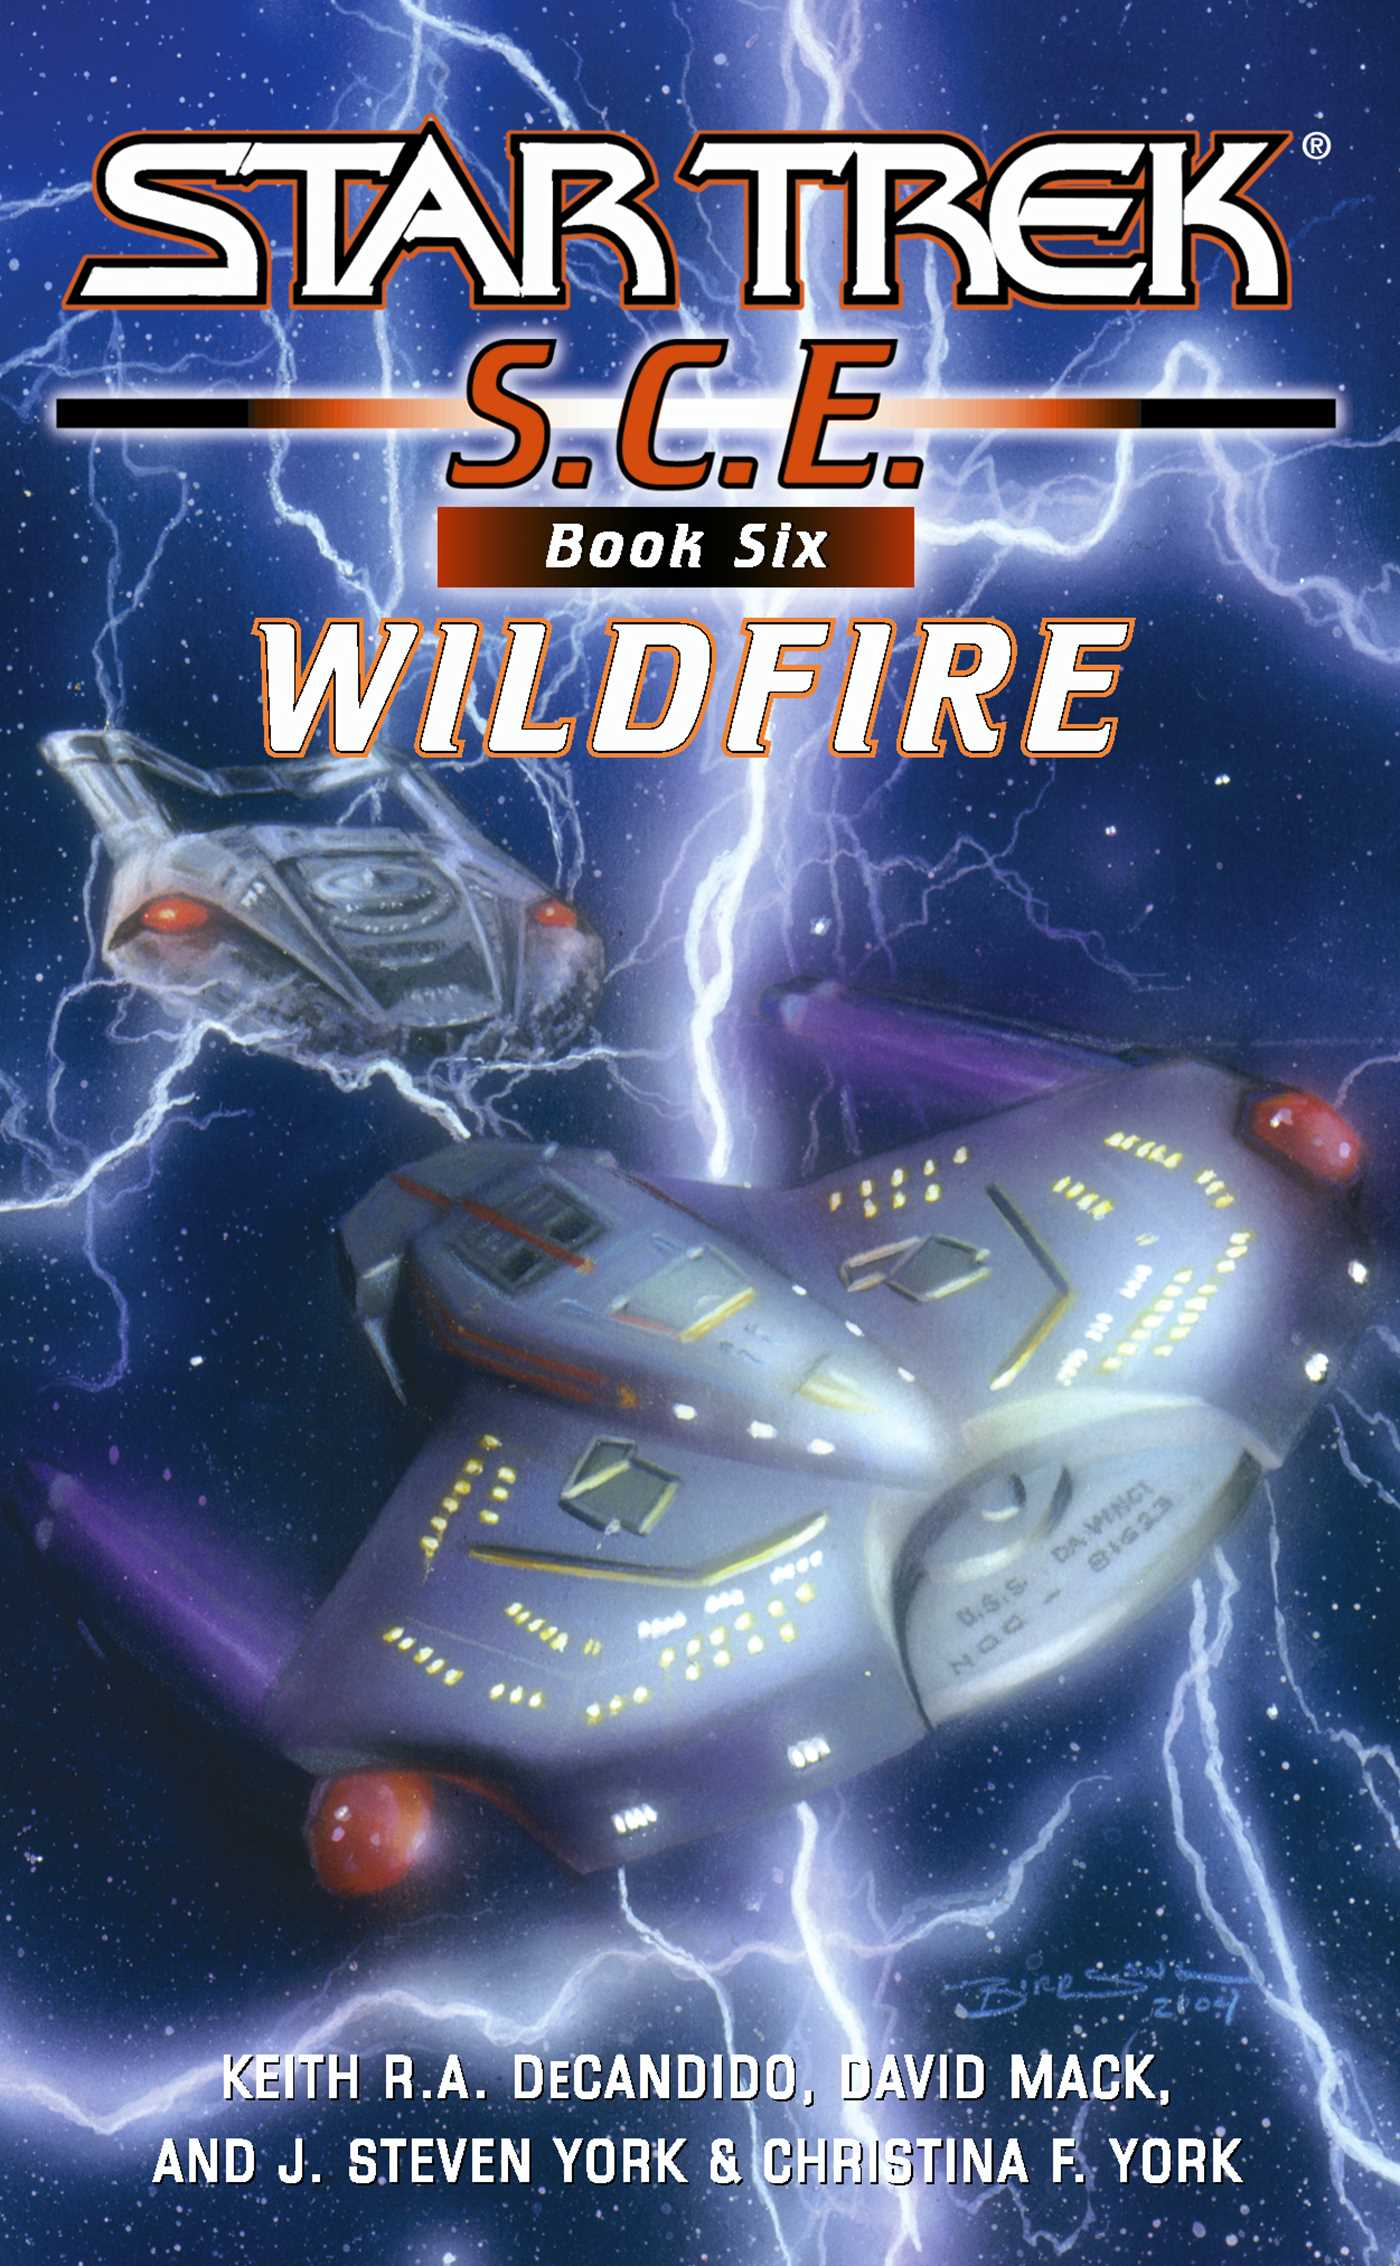 Star-trek-corps-of-engineers-wildfire-9781416507888_hr